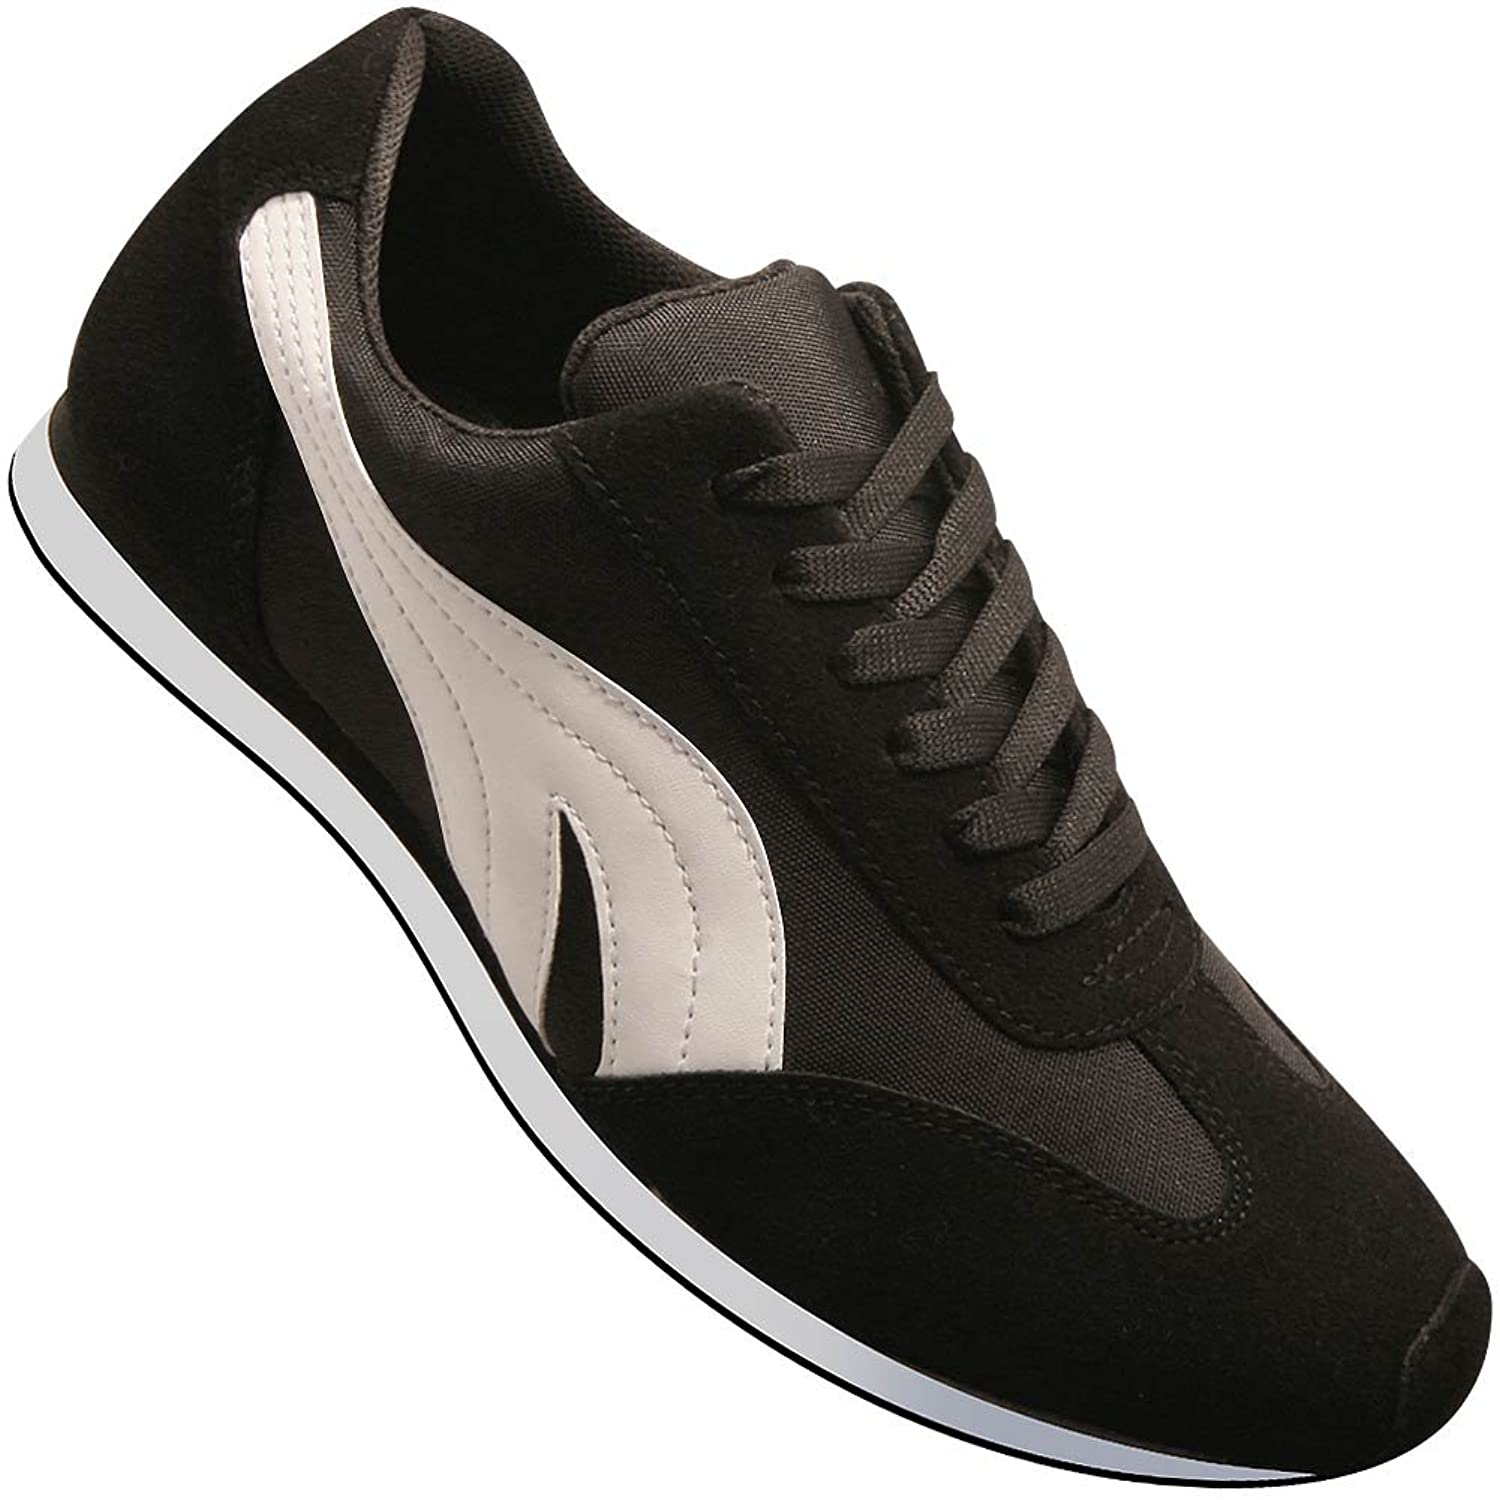 Rockabilly Men's Clothing Aris Allen Mens Retro Runner Dance Sneaker in Black and White $59.95 AT vintagedancer.com